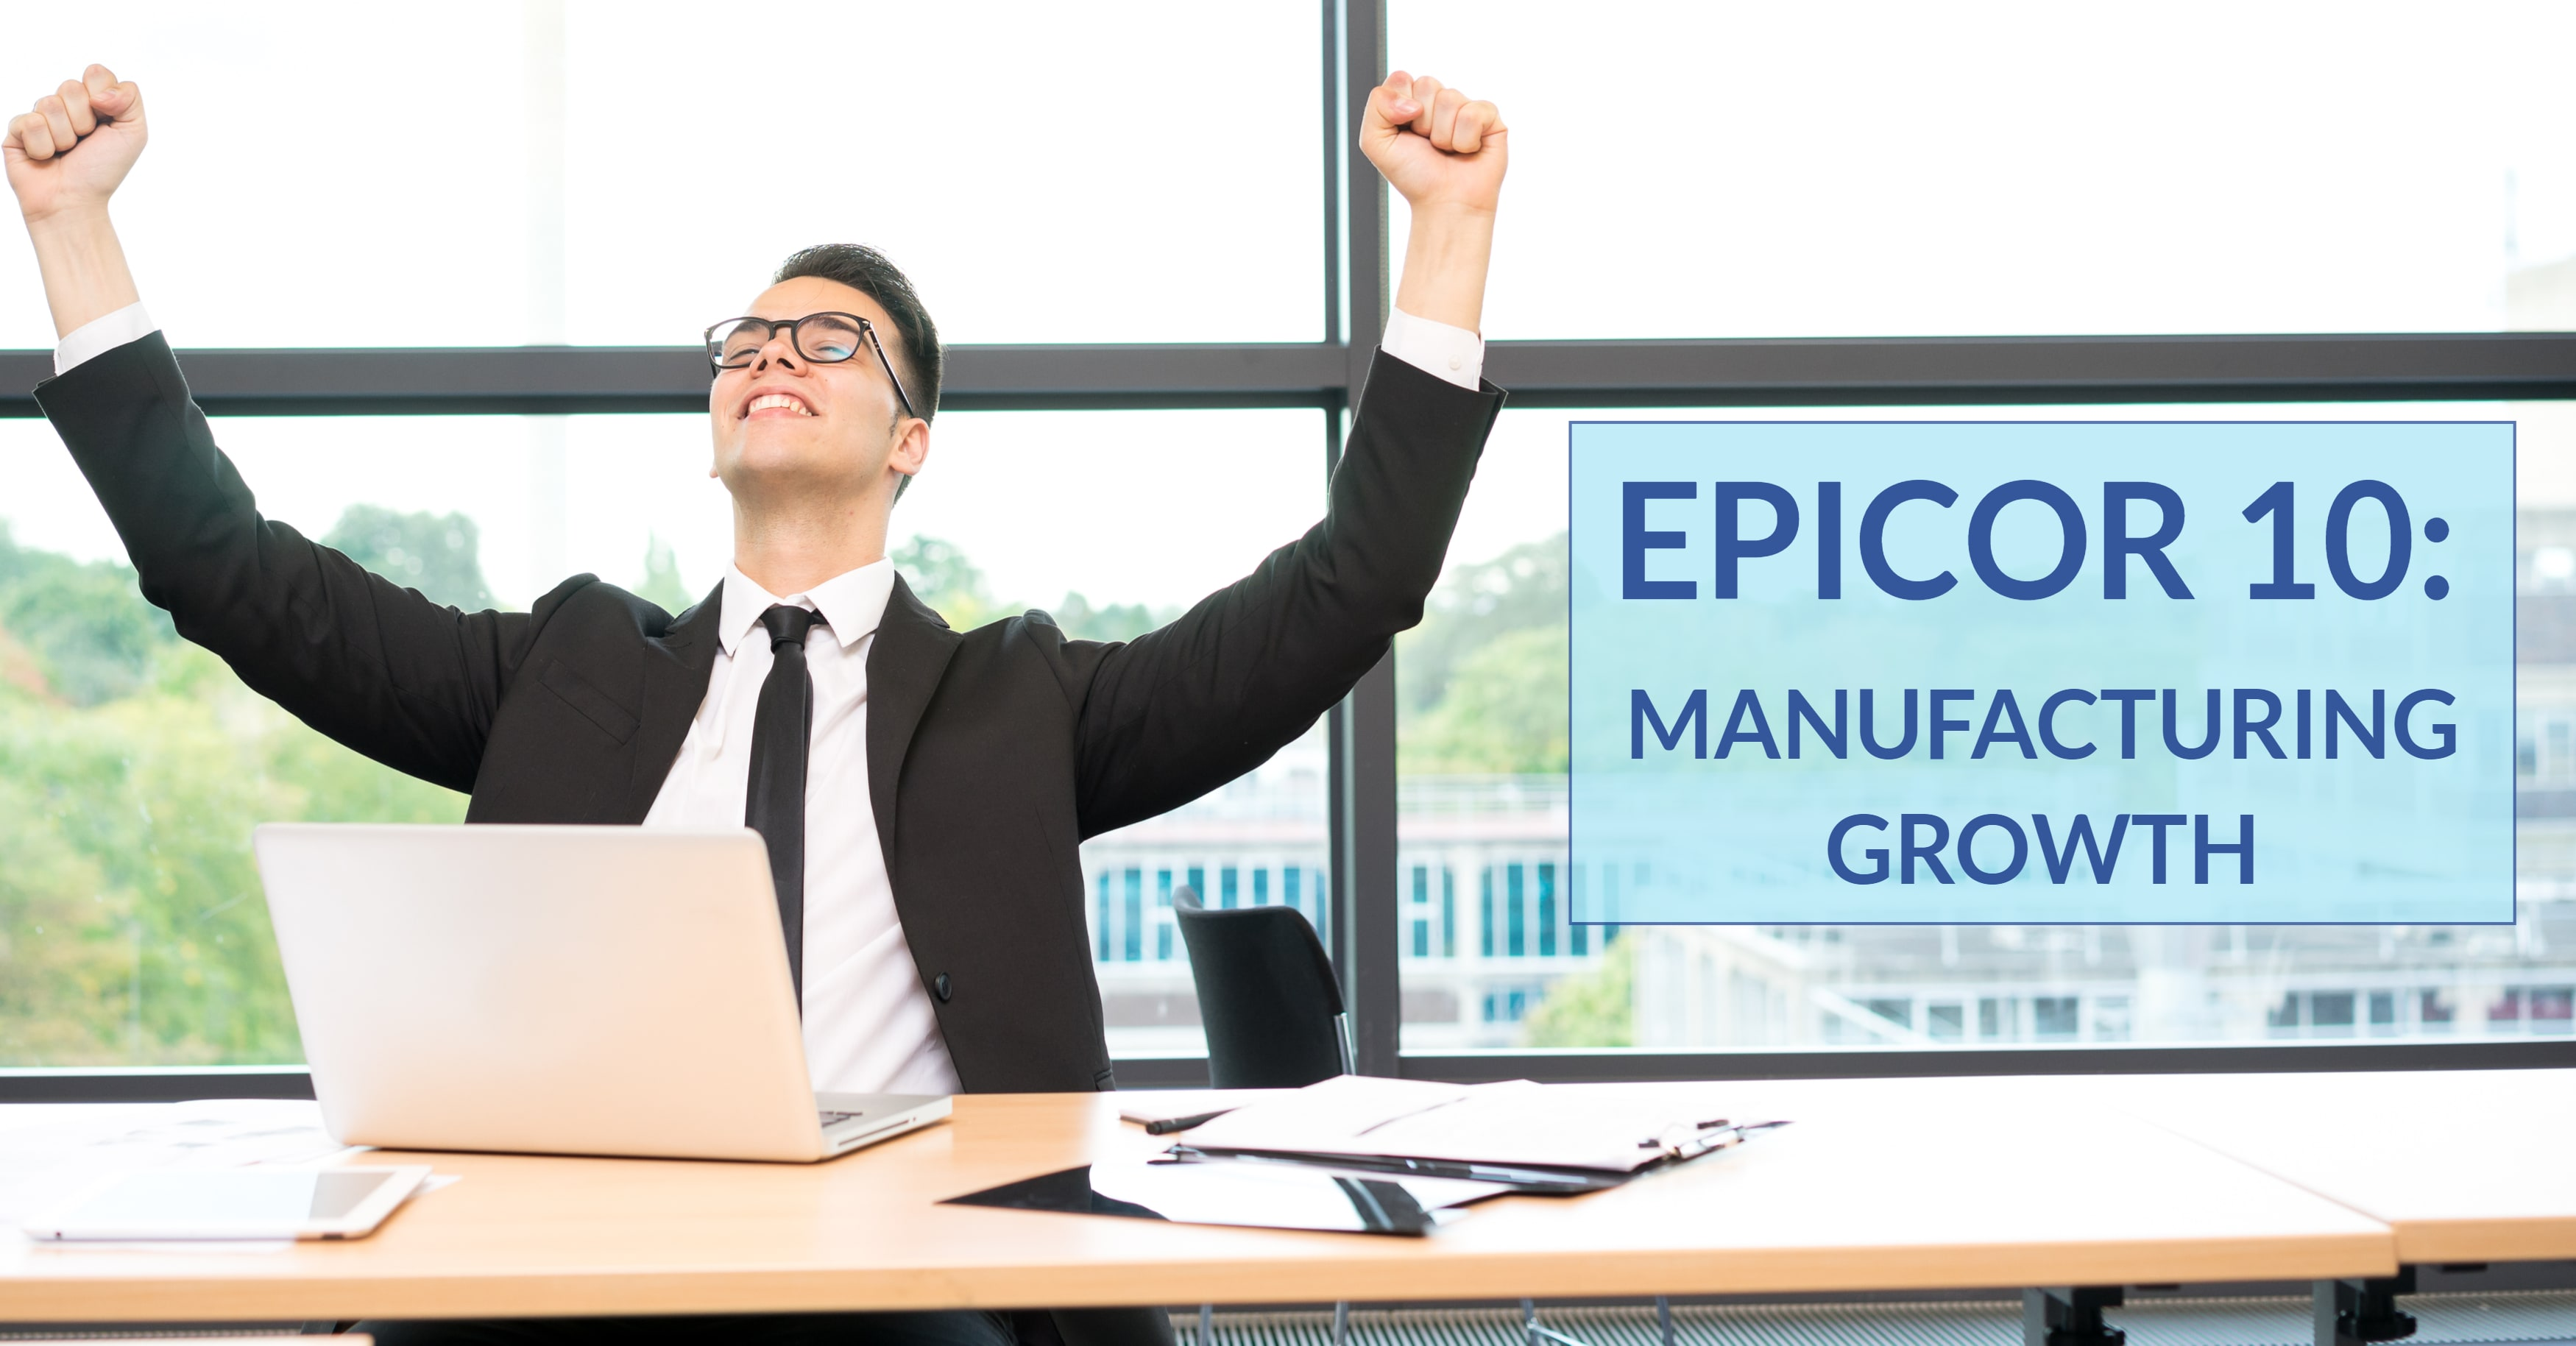 Epicor 10 Manufacturing Growth